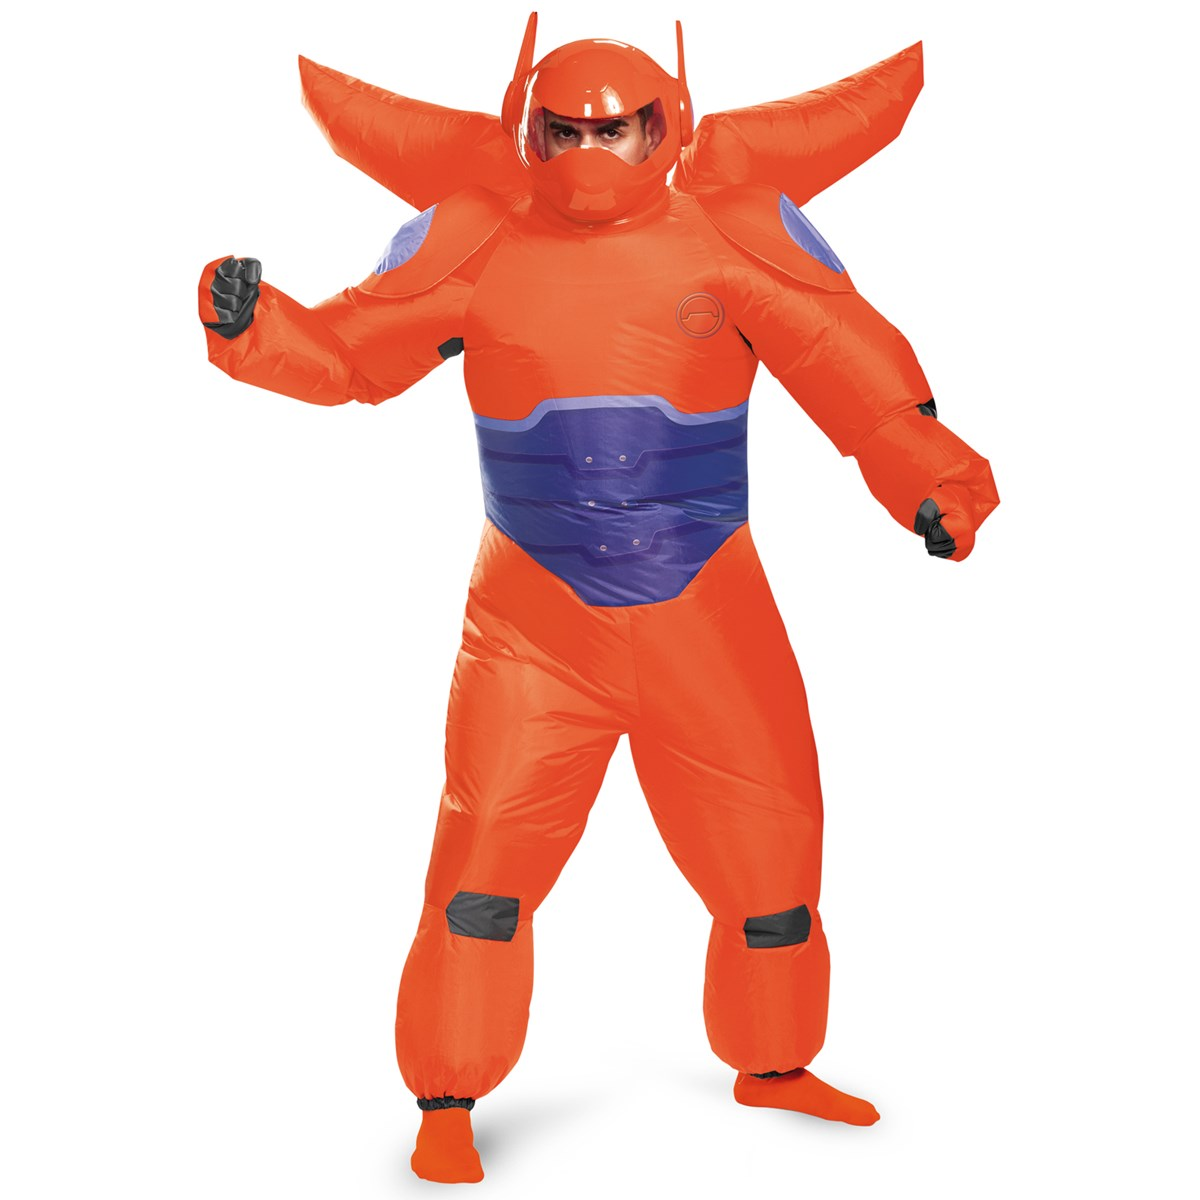 big hero 6 red baymax inflatable costume for adults buycostumescom - Clifford The Big Red Dog Halloween Costume